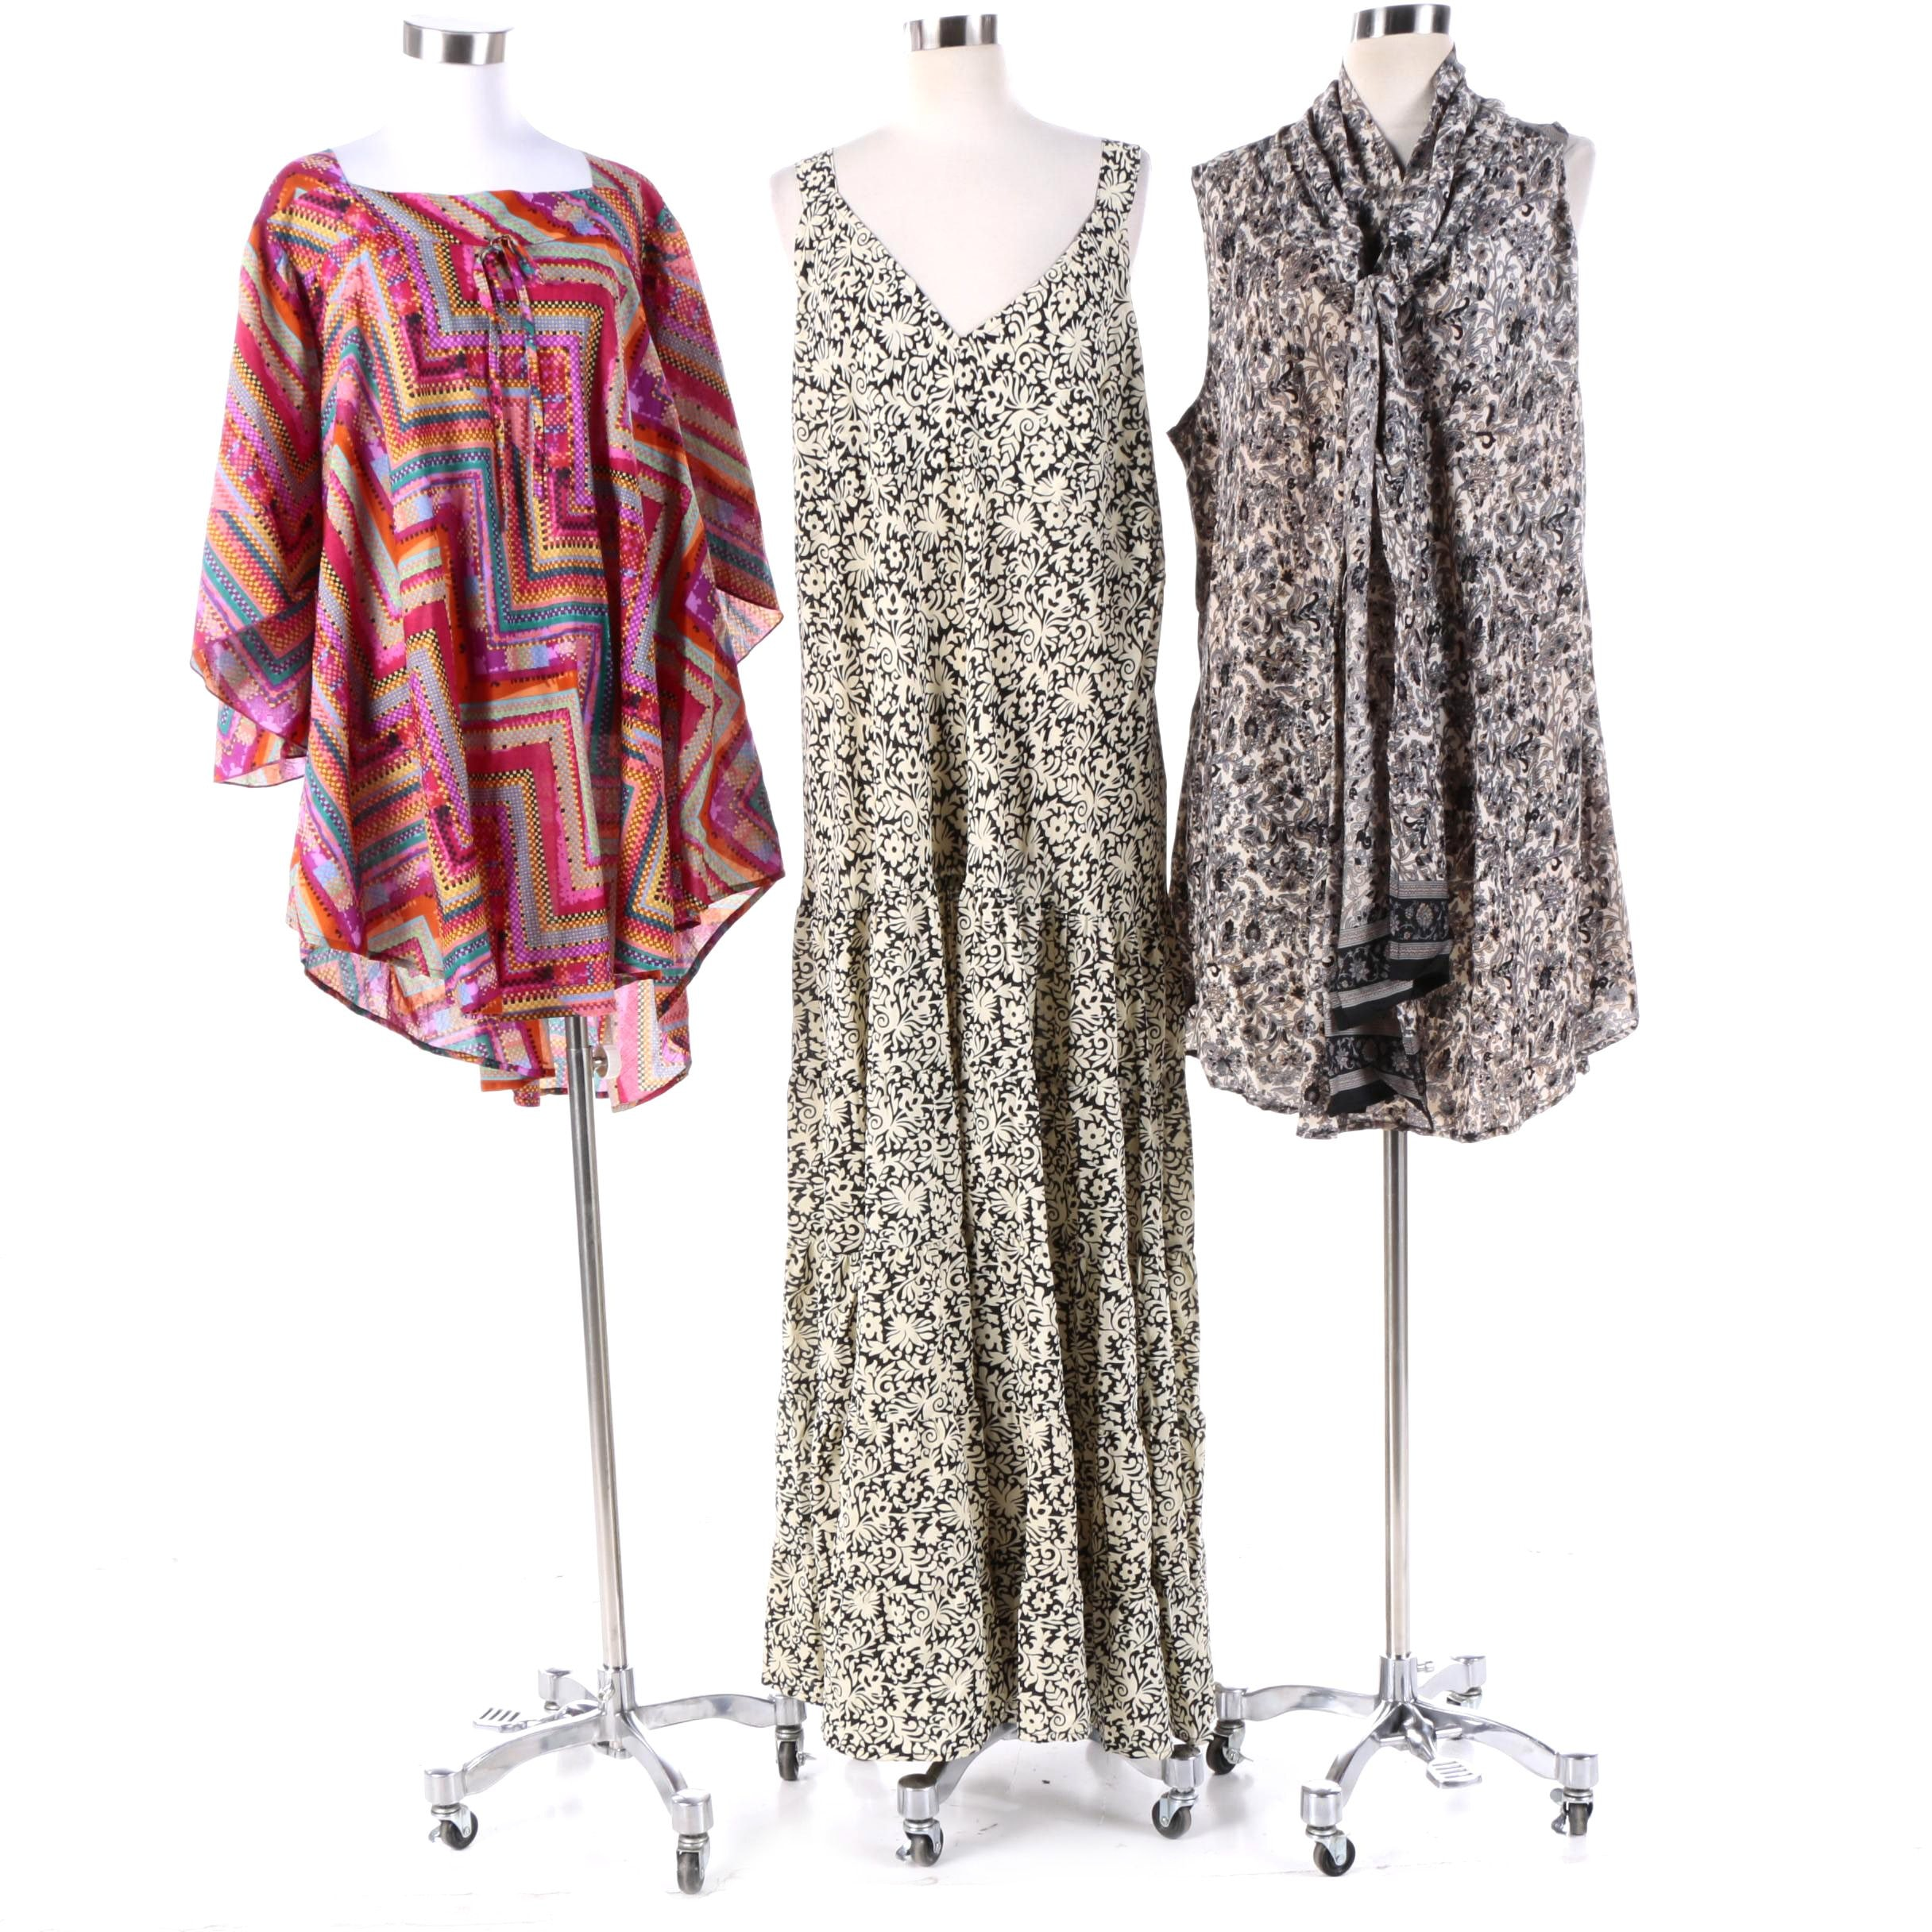 Aller Simplement Casual Summer Maxi and Tunics